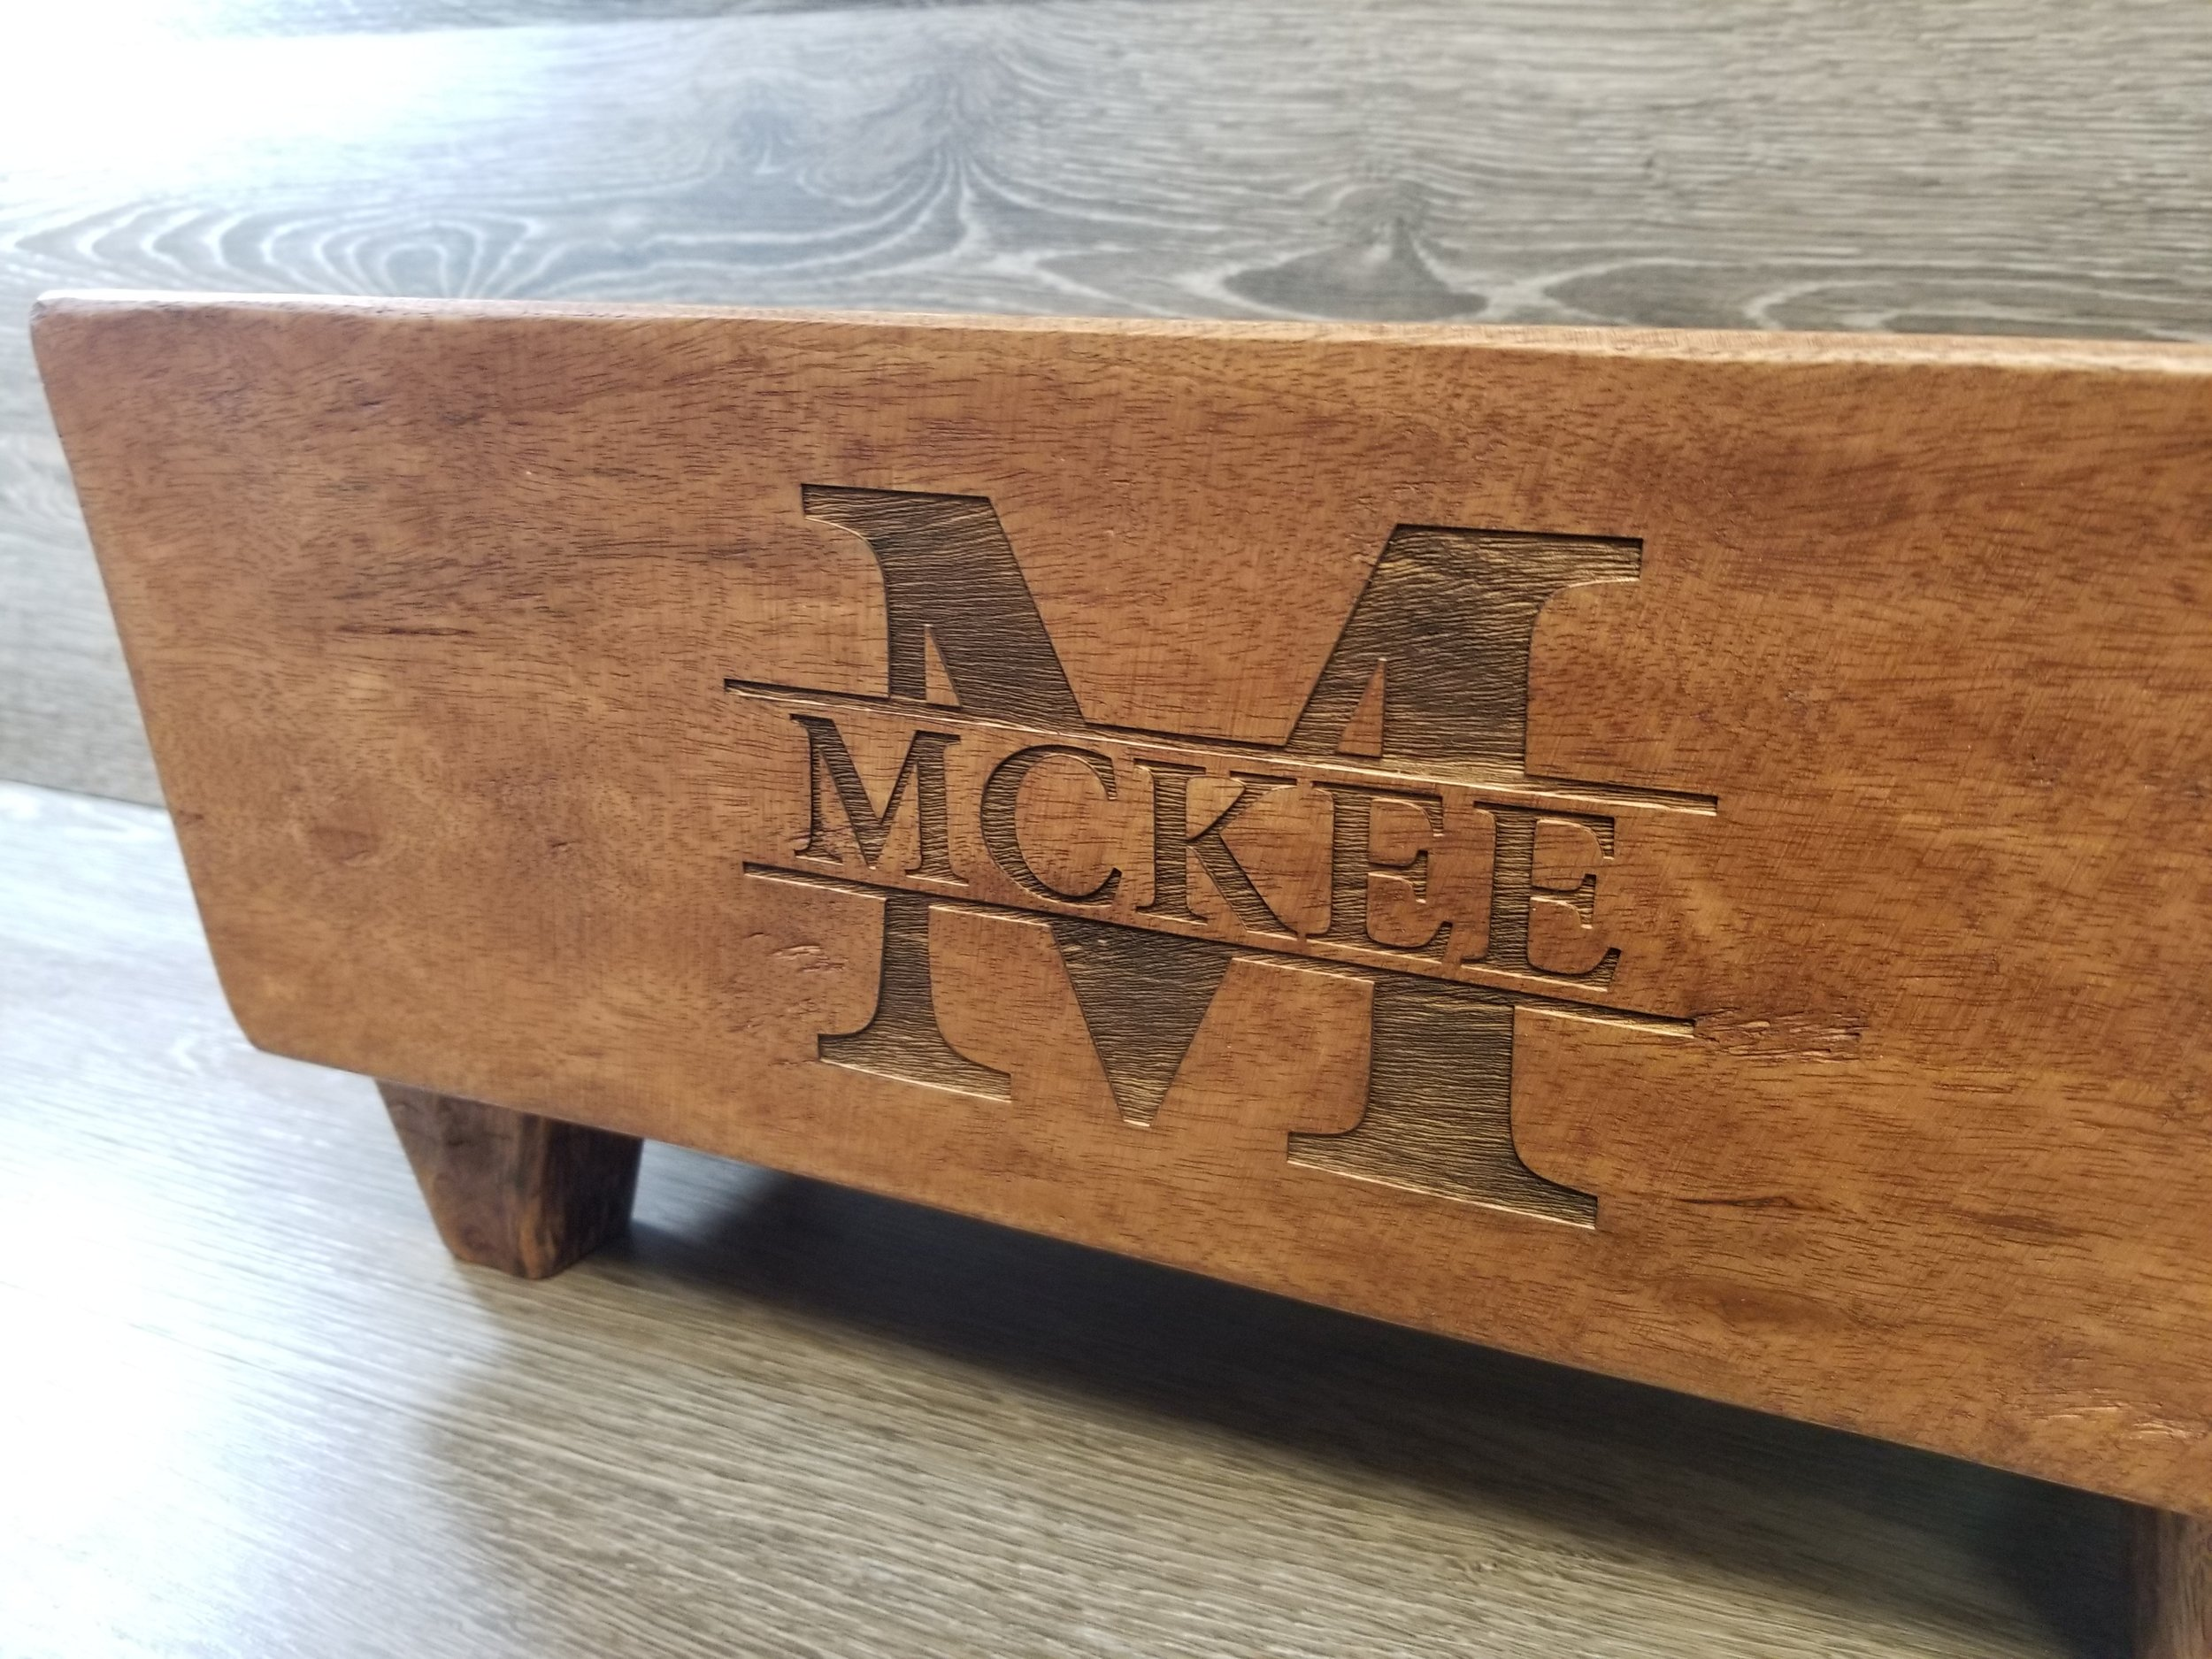 Copy of Engraved Wine Trough - Custom Wine Trough - Personalized Wine Trough - Wood Engraving - Custom Wood Burning - Custom Projects - Engrave It houston